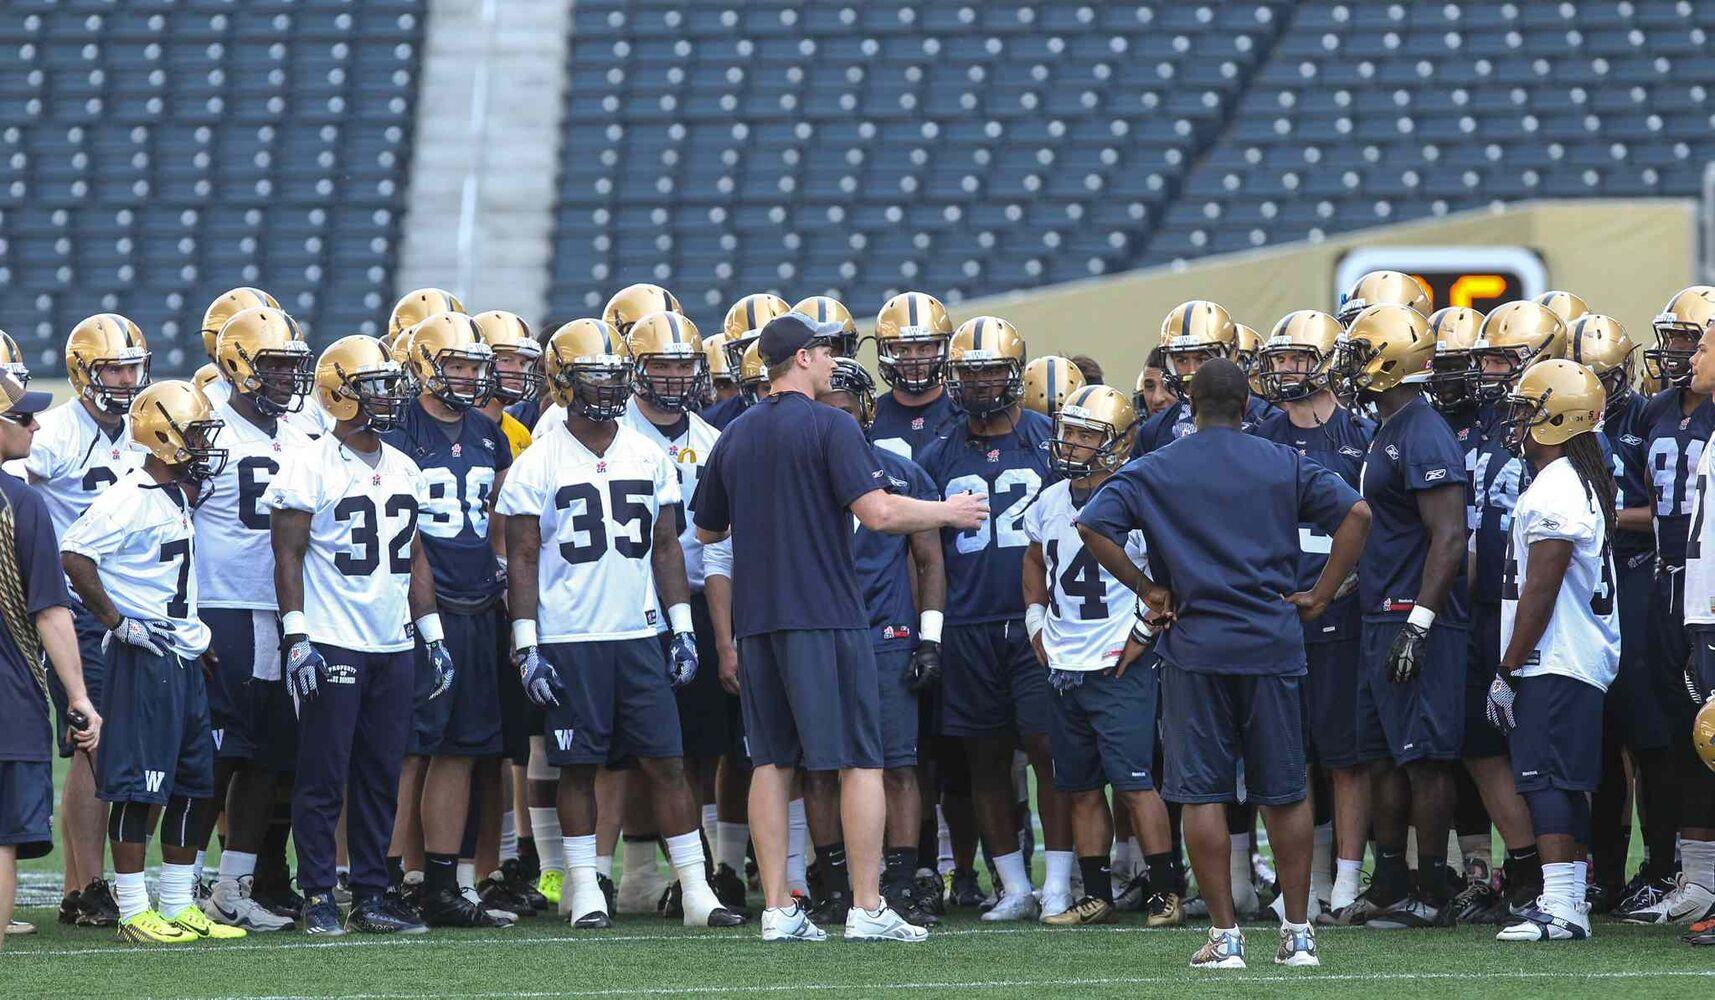 Head coach Mike O'Shea talks to the team during the first official day of the Winnipeg Blue Bombers training camp at Investors Group Field Sunday morning. (MIKE DEAL / WINNIPEG FREE PRESS)